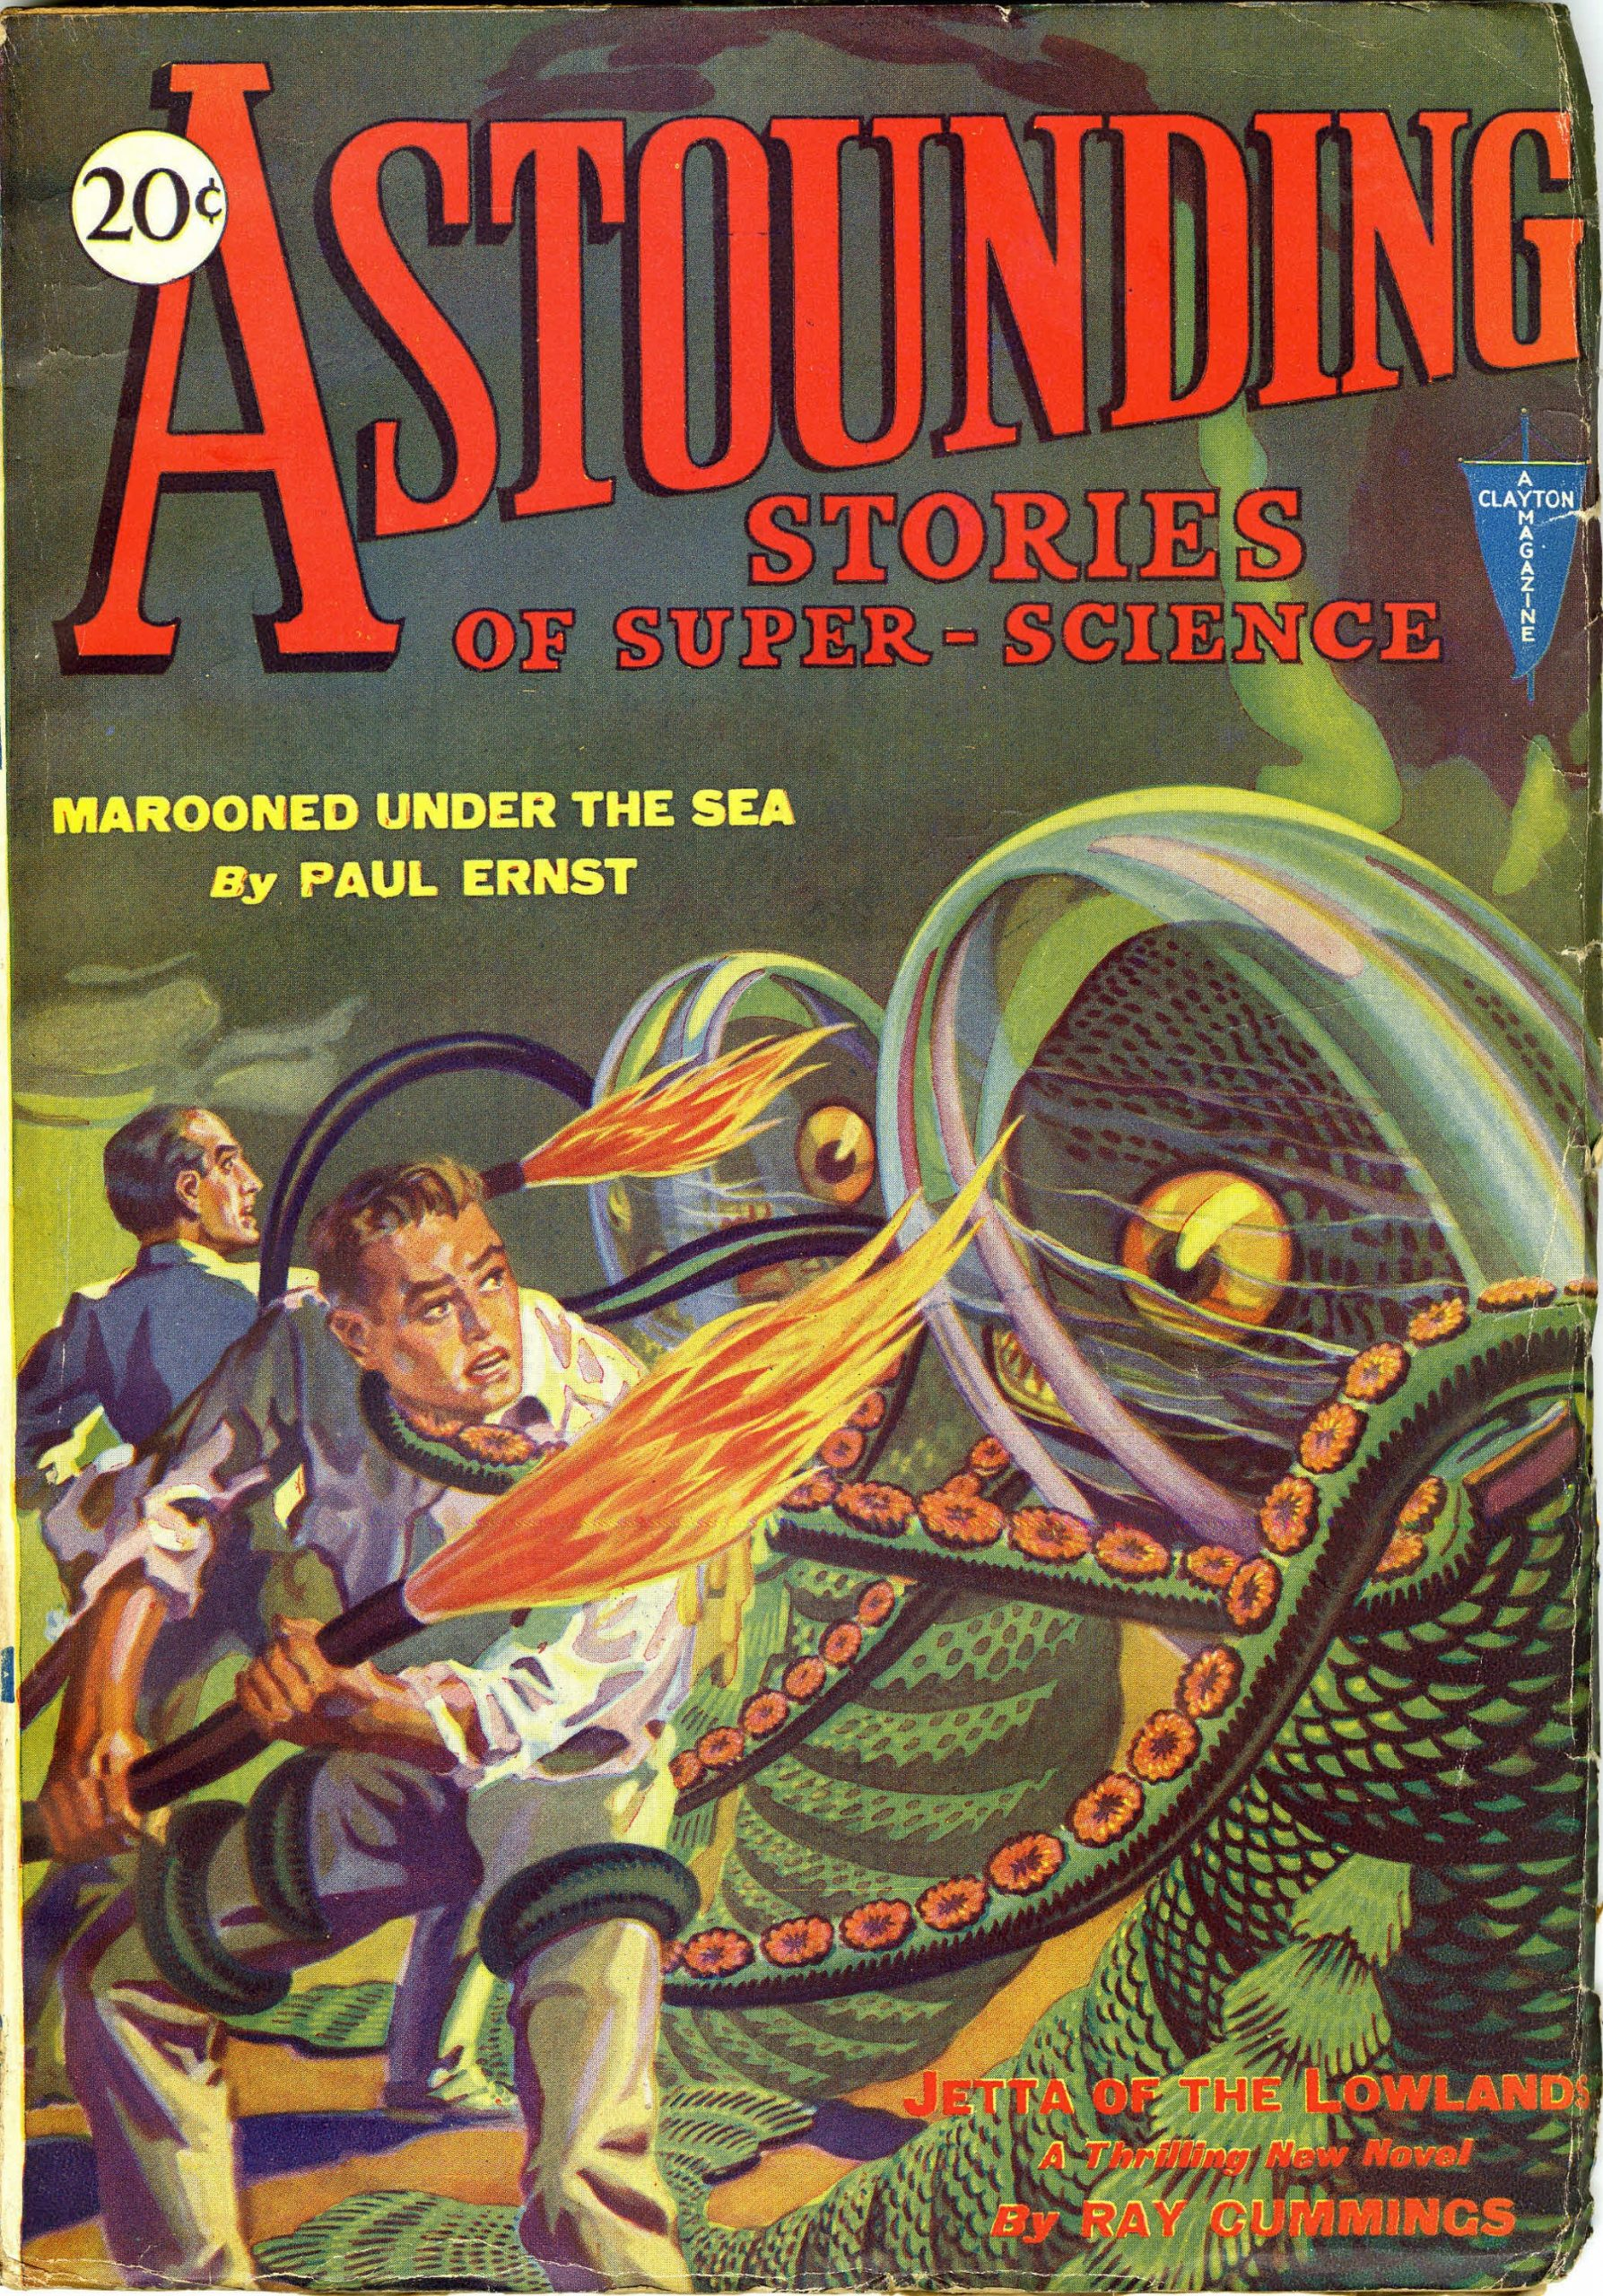 Astounding, Stories of Super-Science